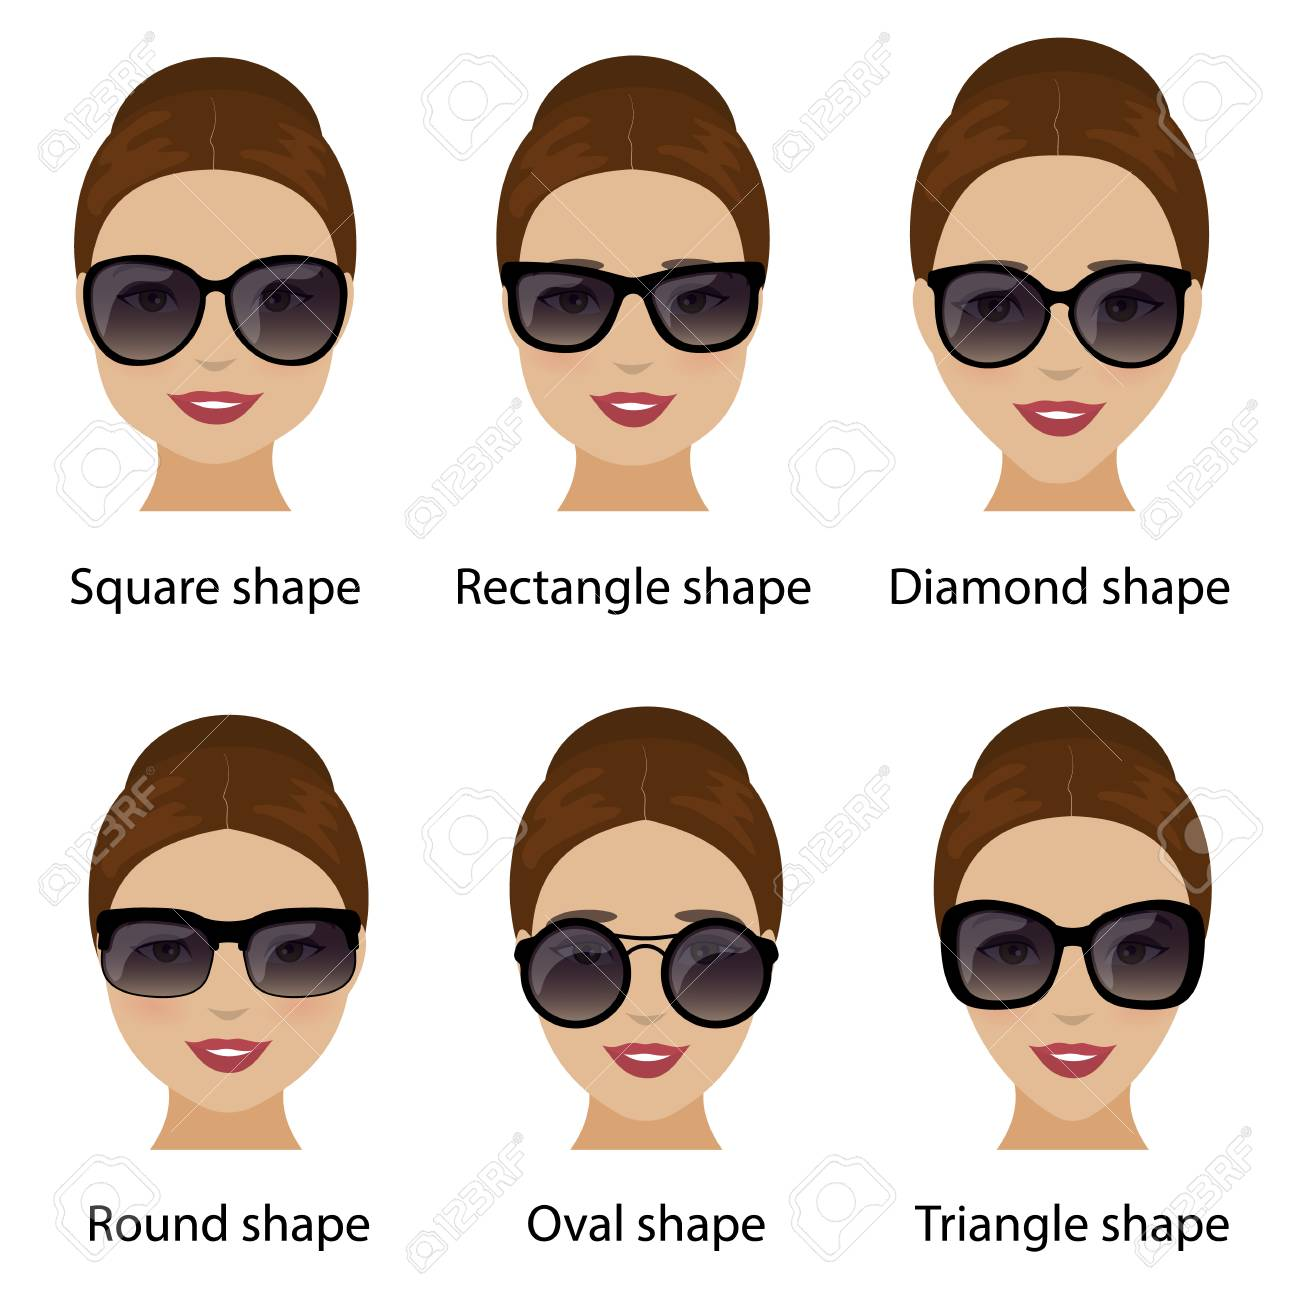 870b5073948e Spectacle frames shapes and different types of women face shapes. Face types  as oval